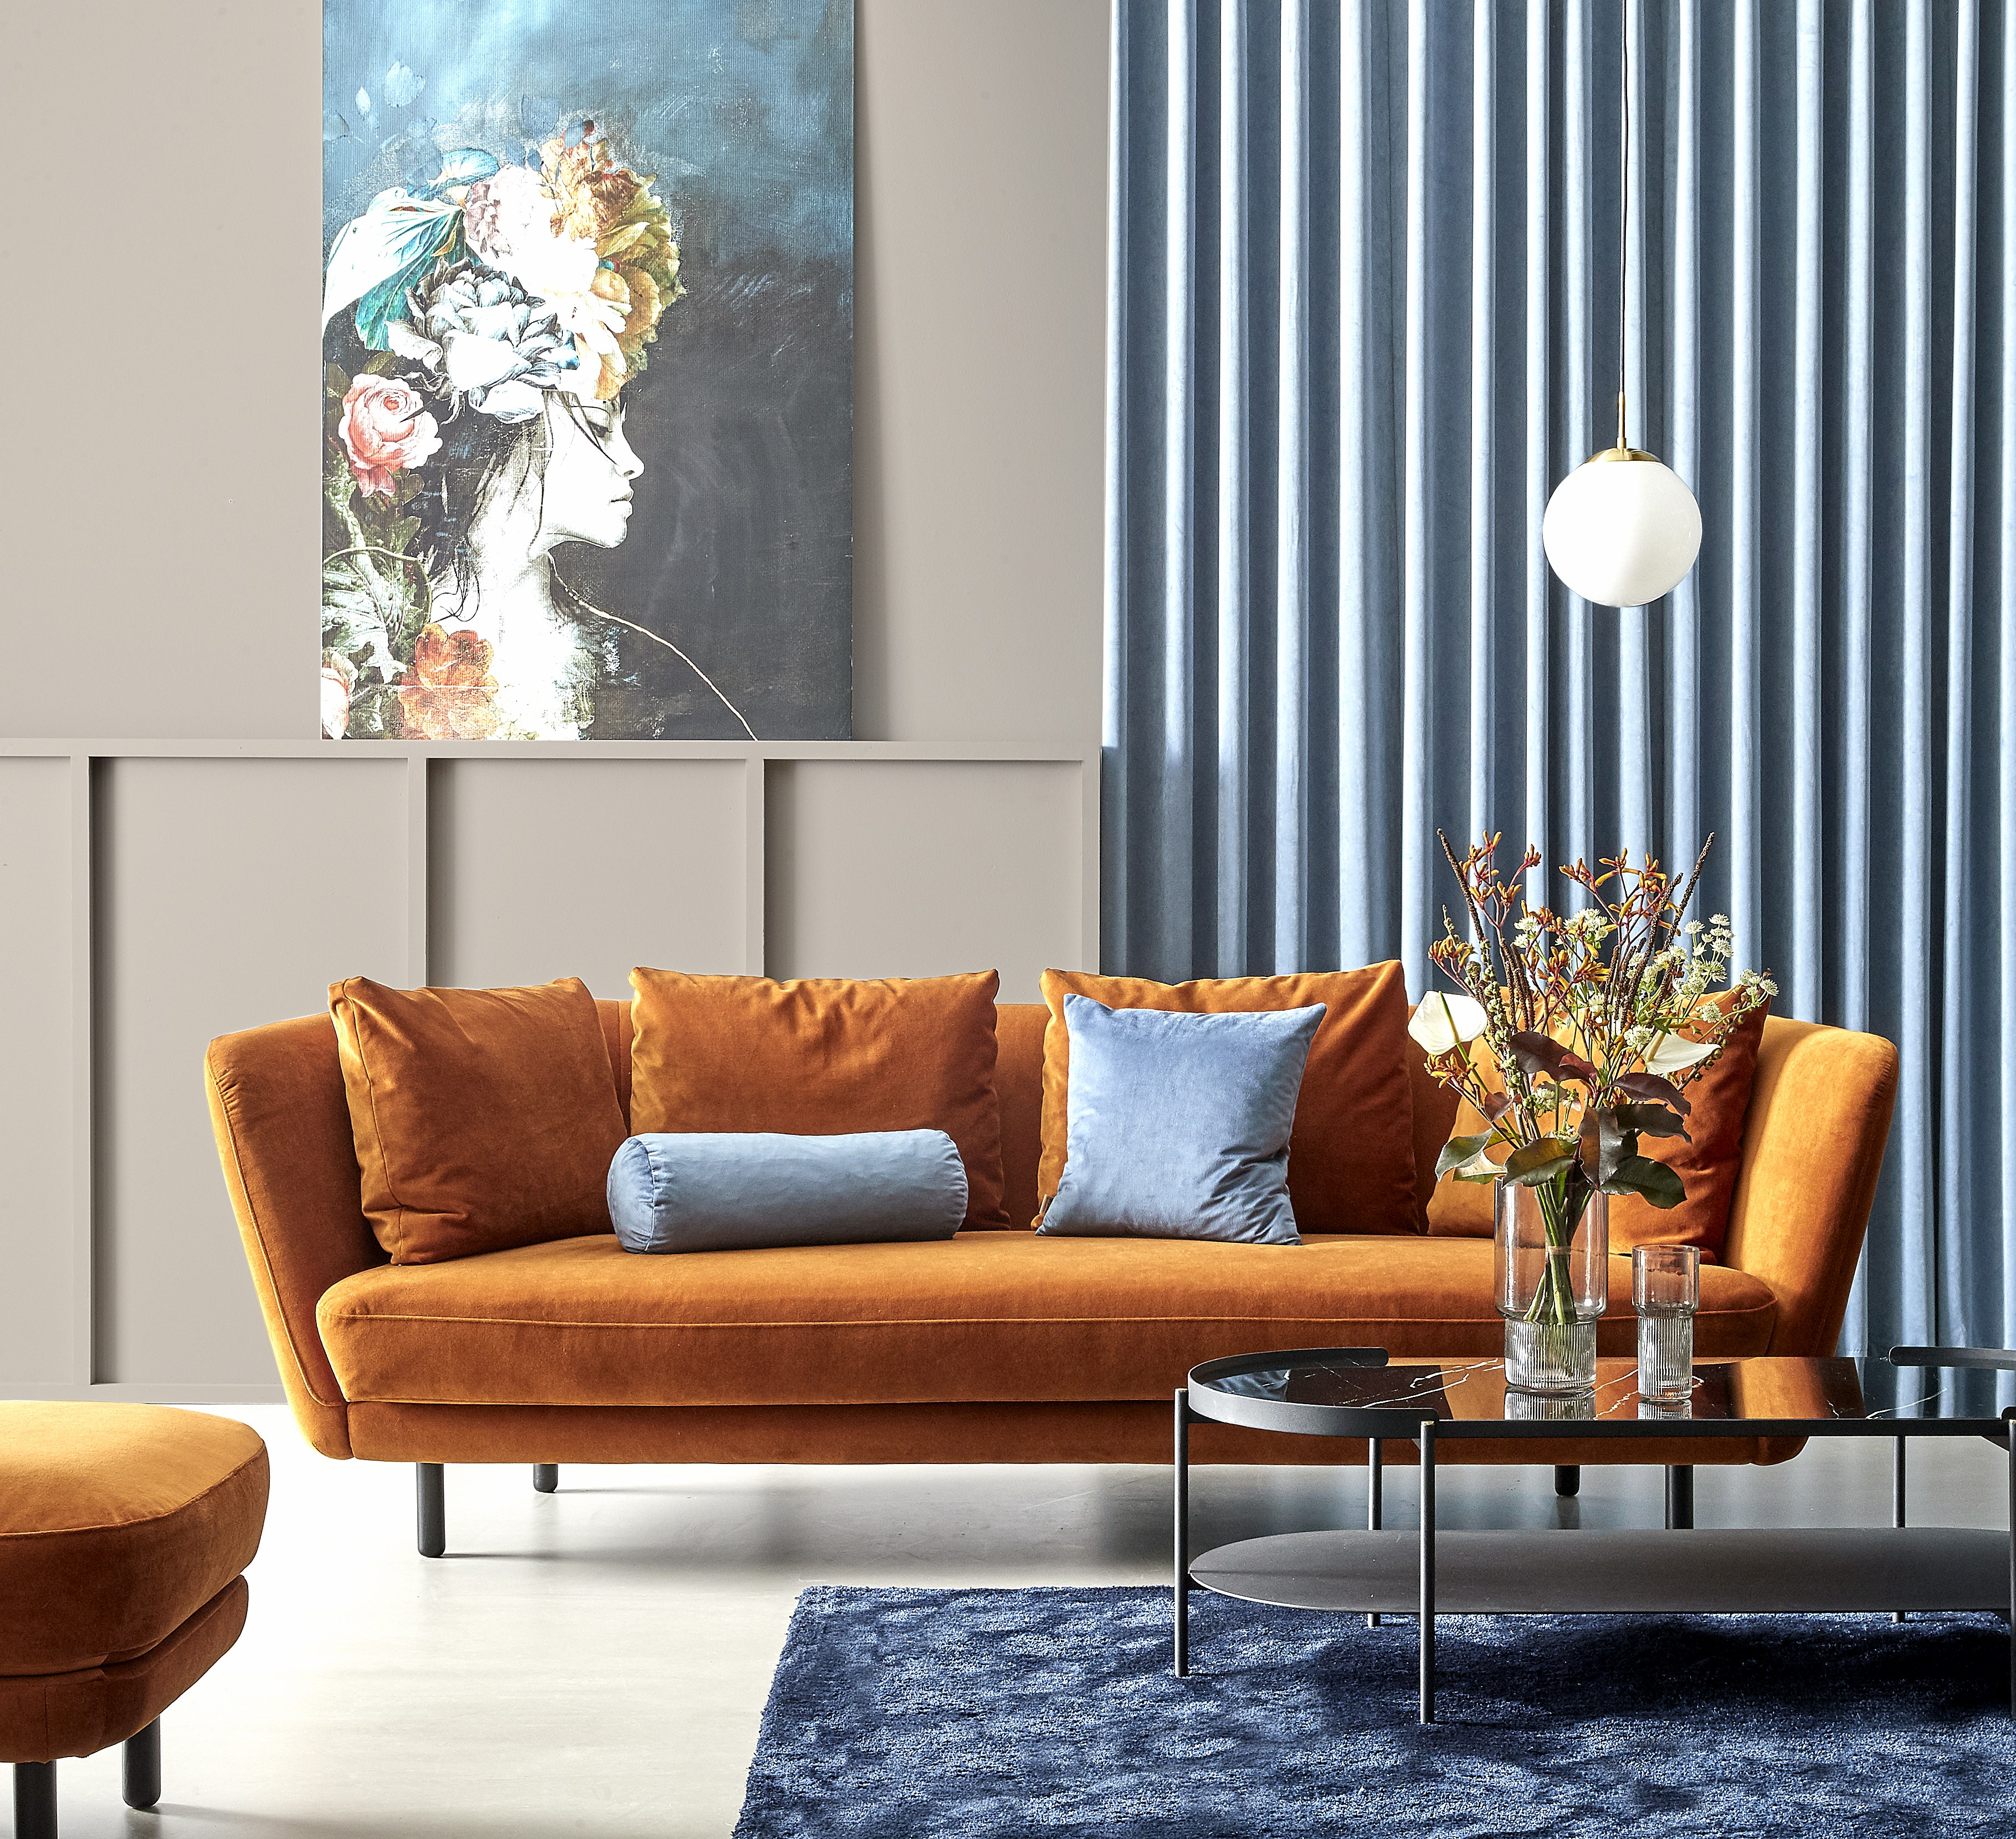 Picture of: Sofa Hor 3 Pers Ritz 2 12 Pers Sofa